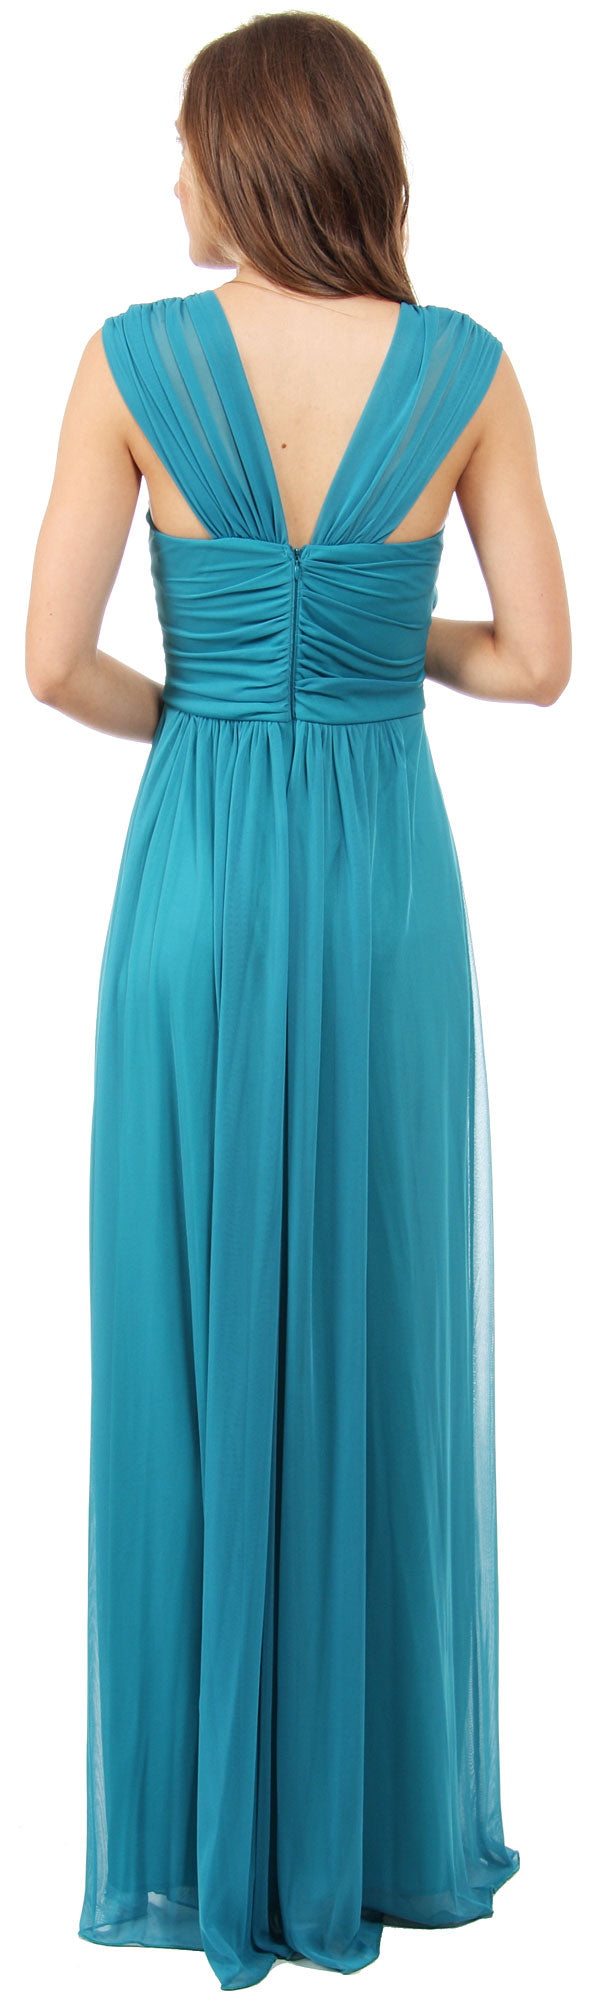 Image of Scoop Neck Broad Straps Shirred Long Formal Bridesmaid Dress back in Jade Green